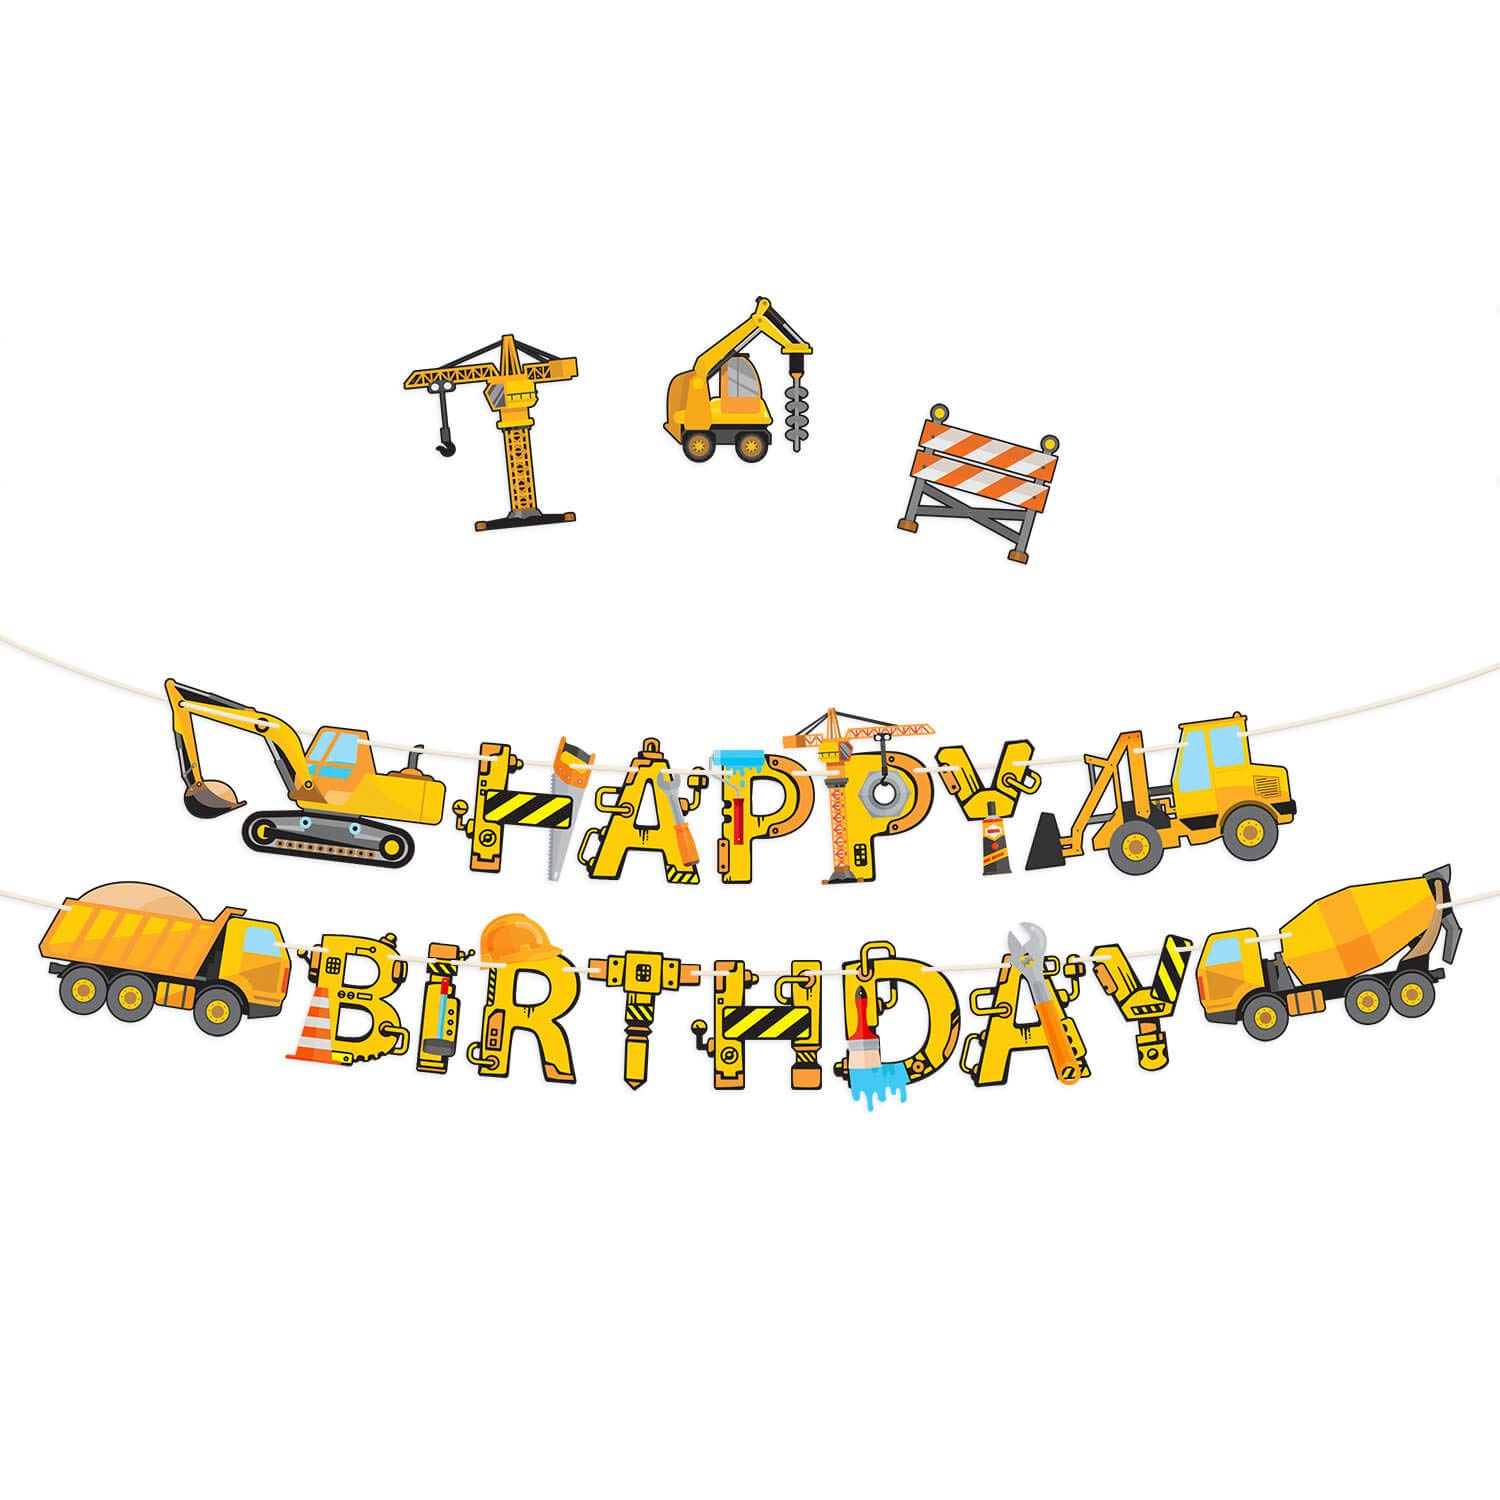 Construction Birthday Party Supplies Chicago Mall - OFFicial store Banner Pre-Assemb Premium